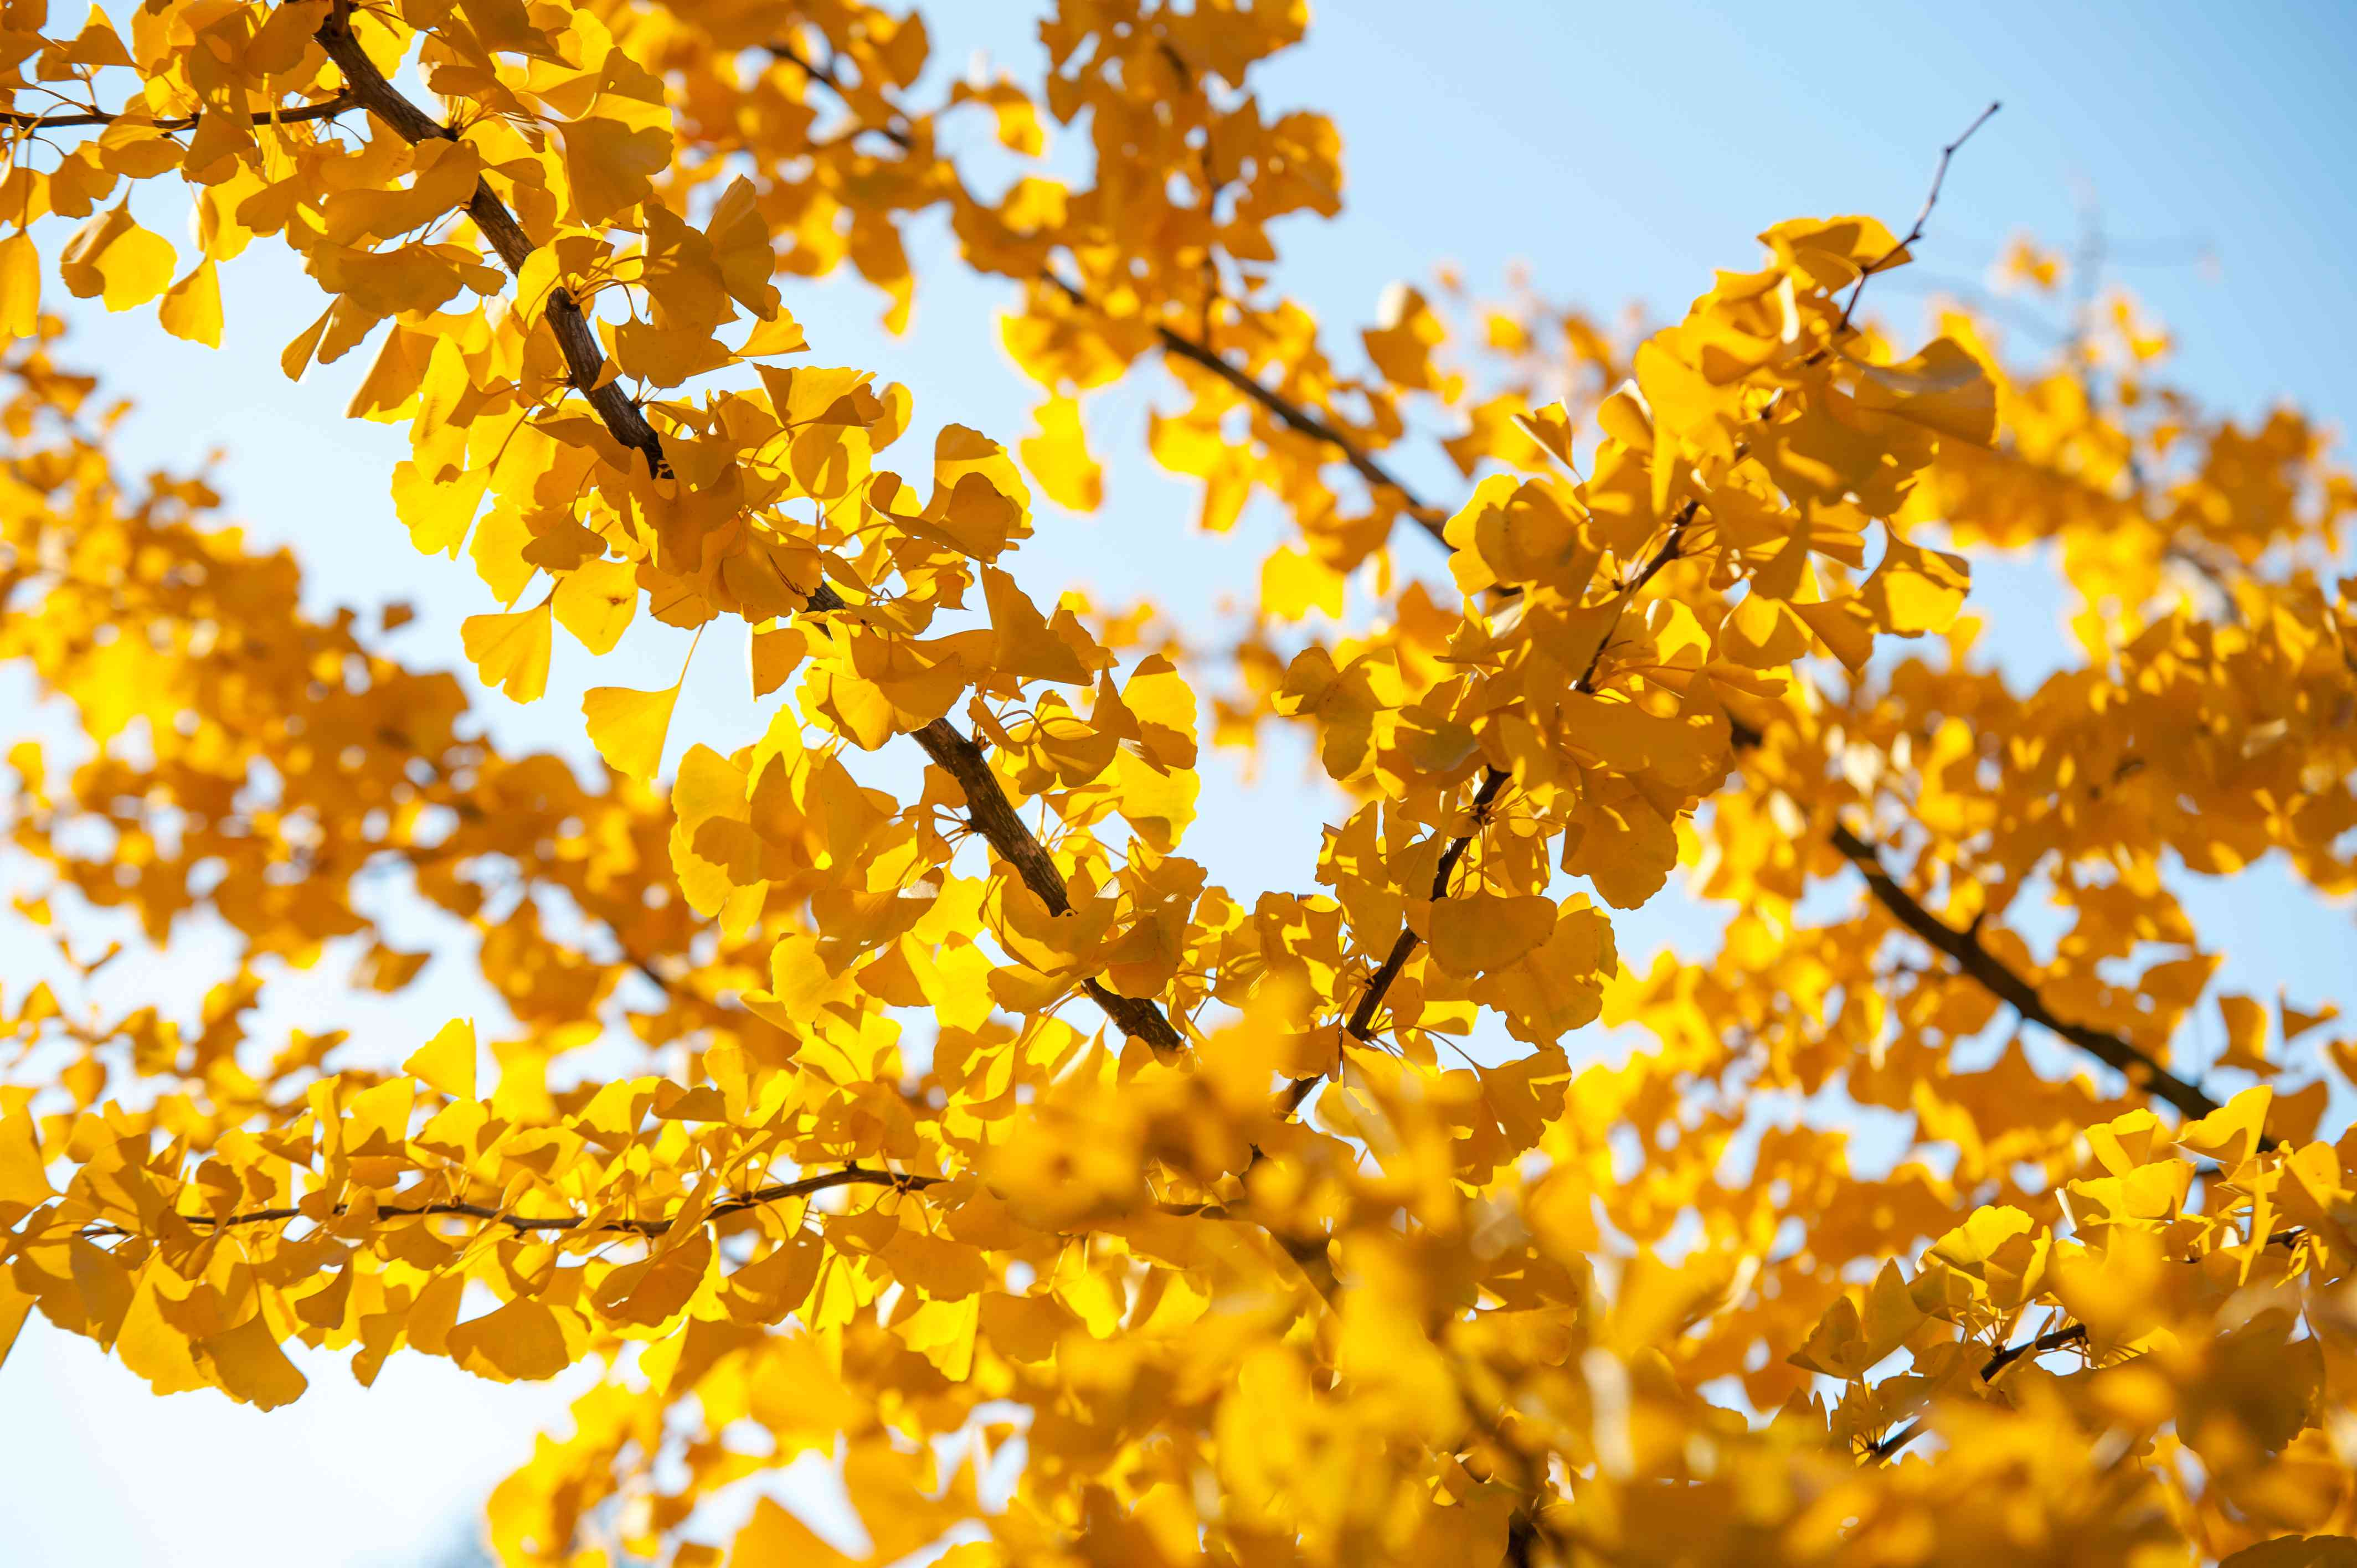 Ginkgo biloba tree branches with yellow leaves against blue sky